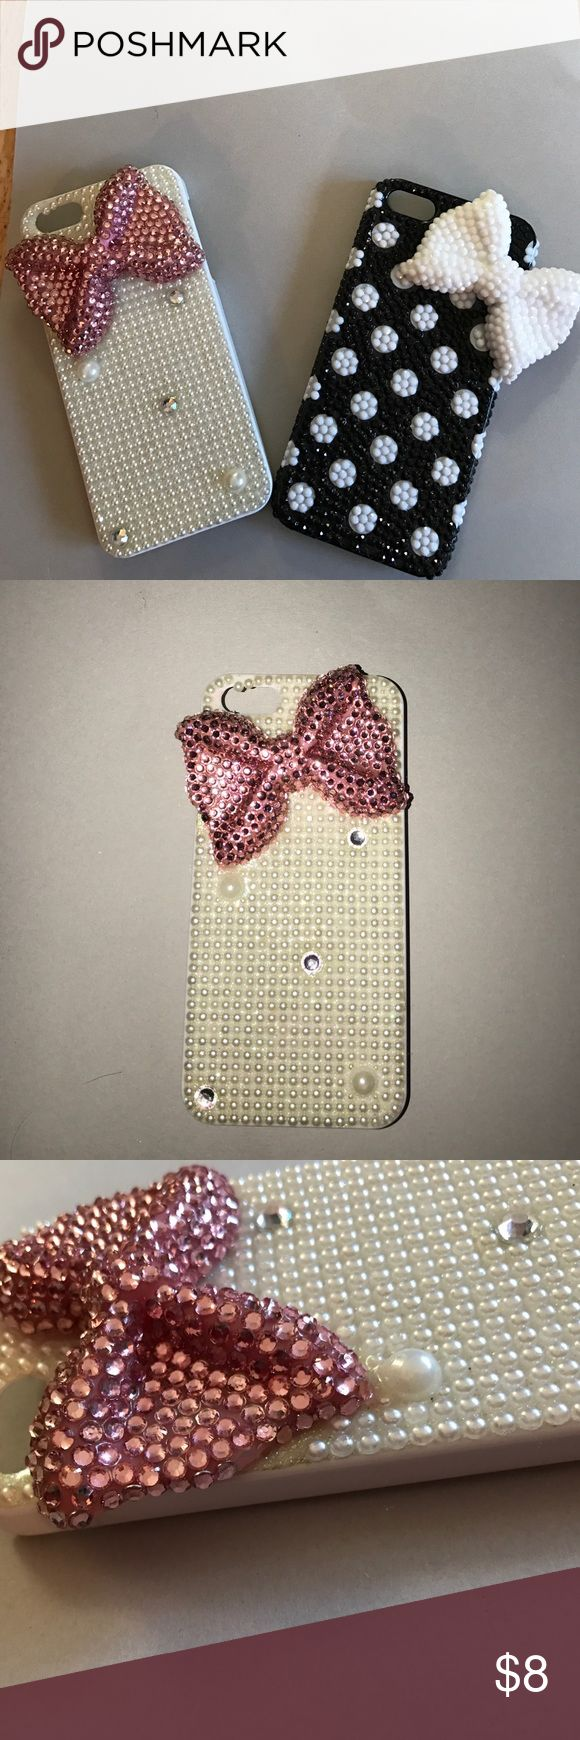 iPhone 5/5s big sparkle bow cases These are very loved cases! -The case with the pink bow has 2 rhinestones missing( as shown is picture #3). -The case with  white bow has a few rhinestones missing at the bottom(as shown in picture #5). -they're beautiful cases and are hard to find. Accessories Phone Cases